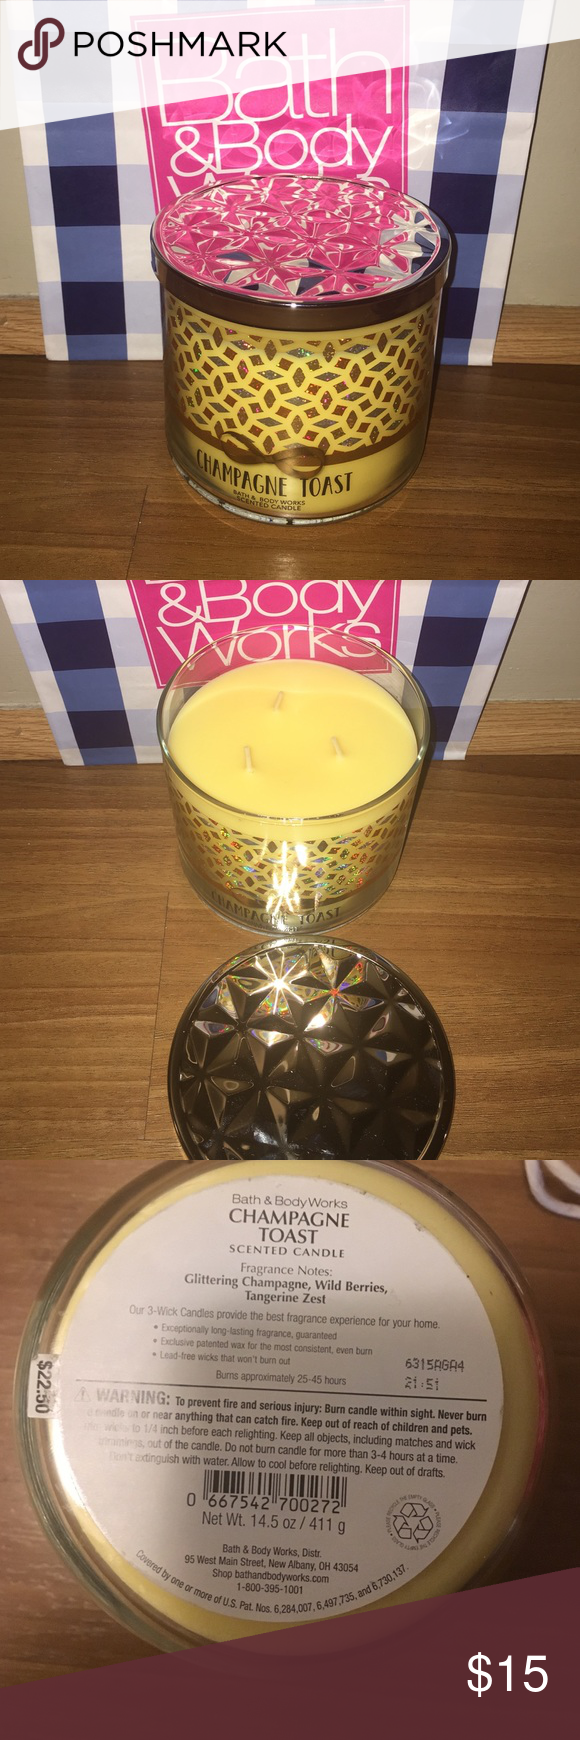 SALE Champagne Toast 3 wick candle Bath & Body Works 3 wick candle ...